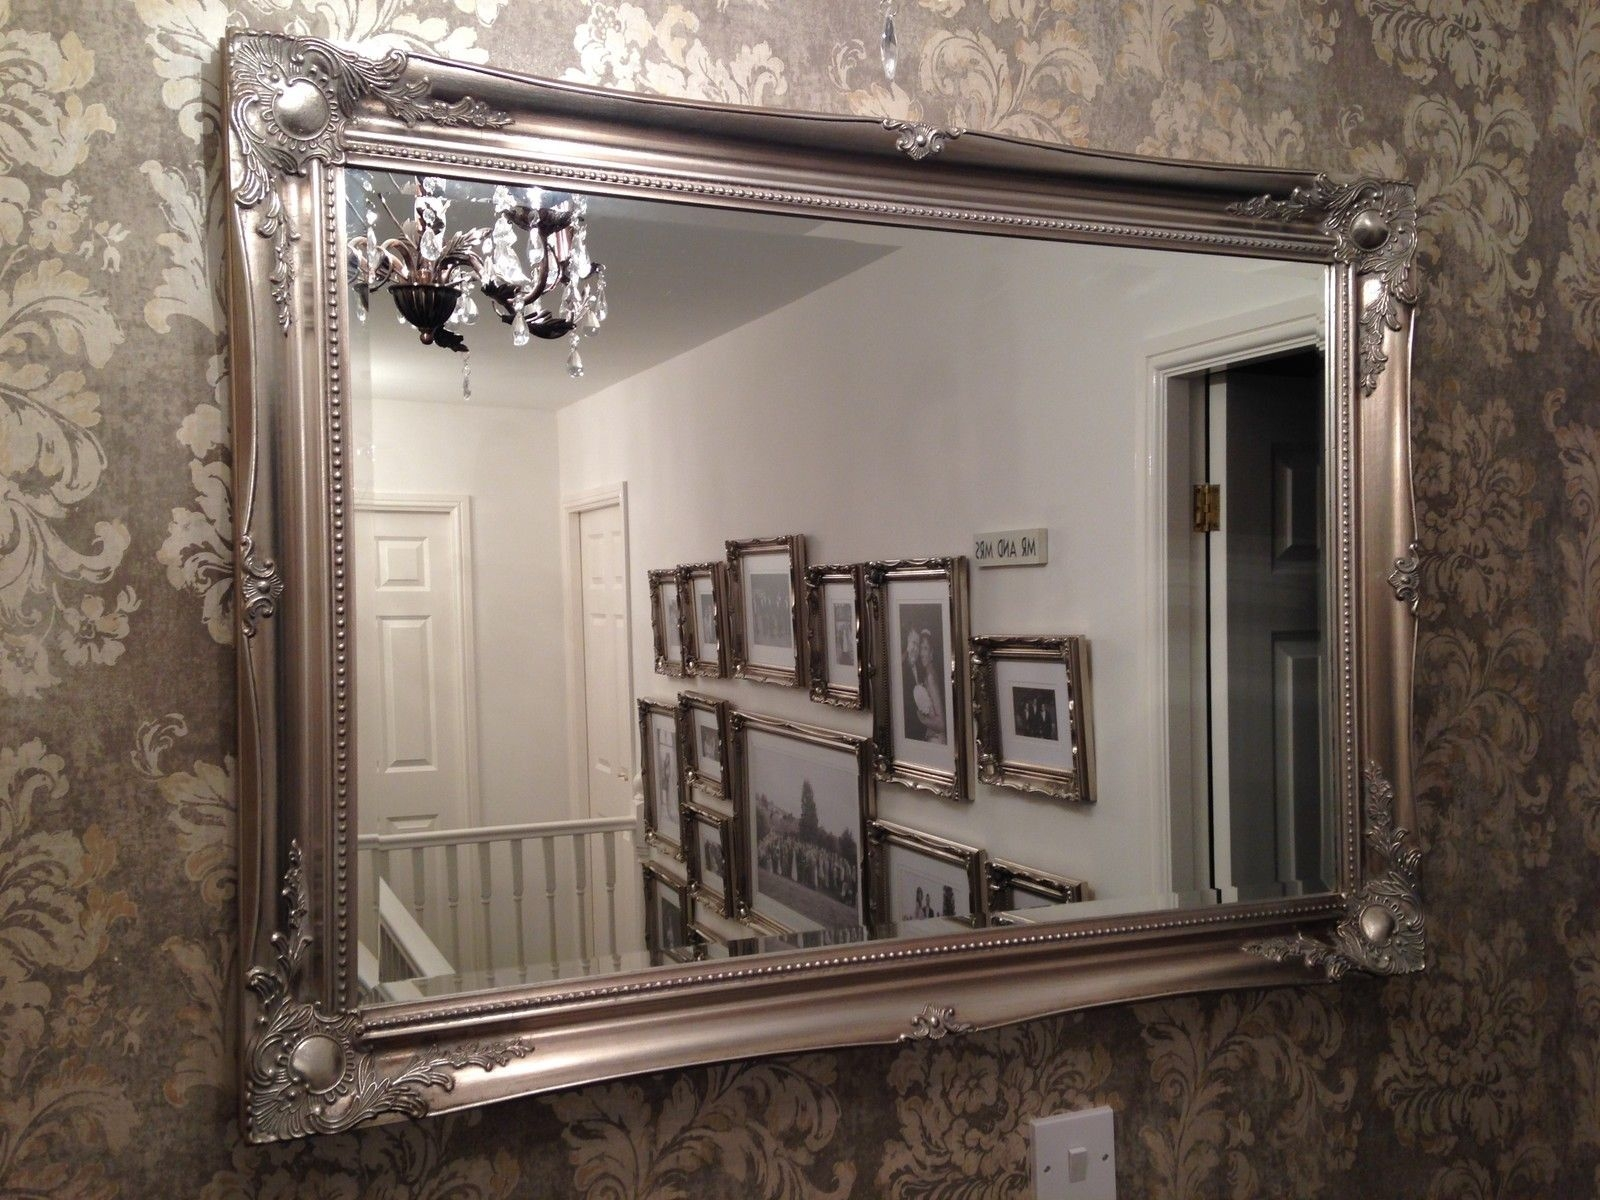 Delightful Ideas Large Decorative Wall Mirrors Tremendous Long Inside Long Decorative Mirror (View 11 of 15)